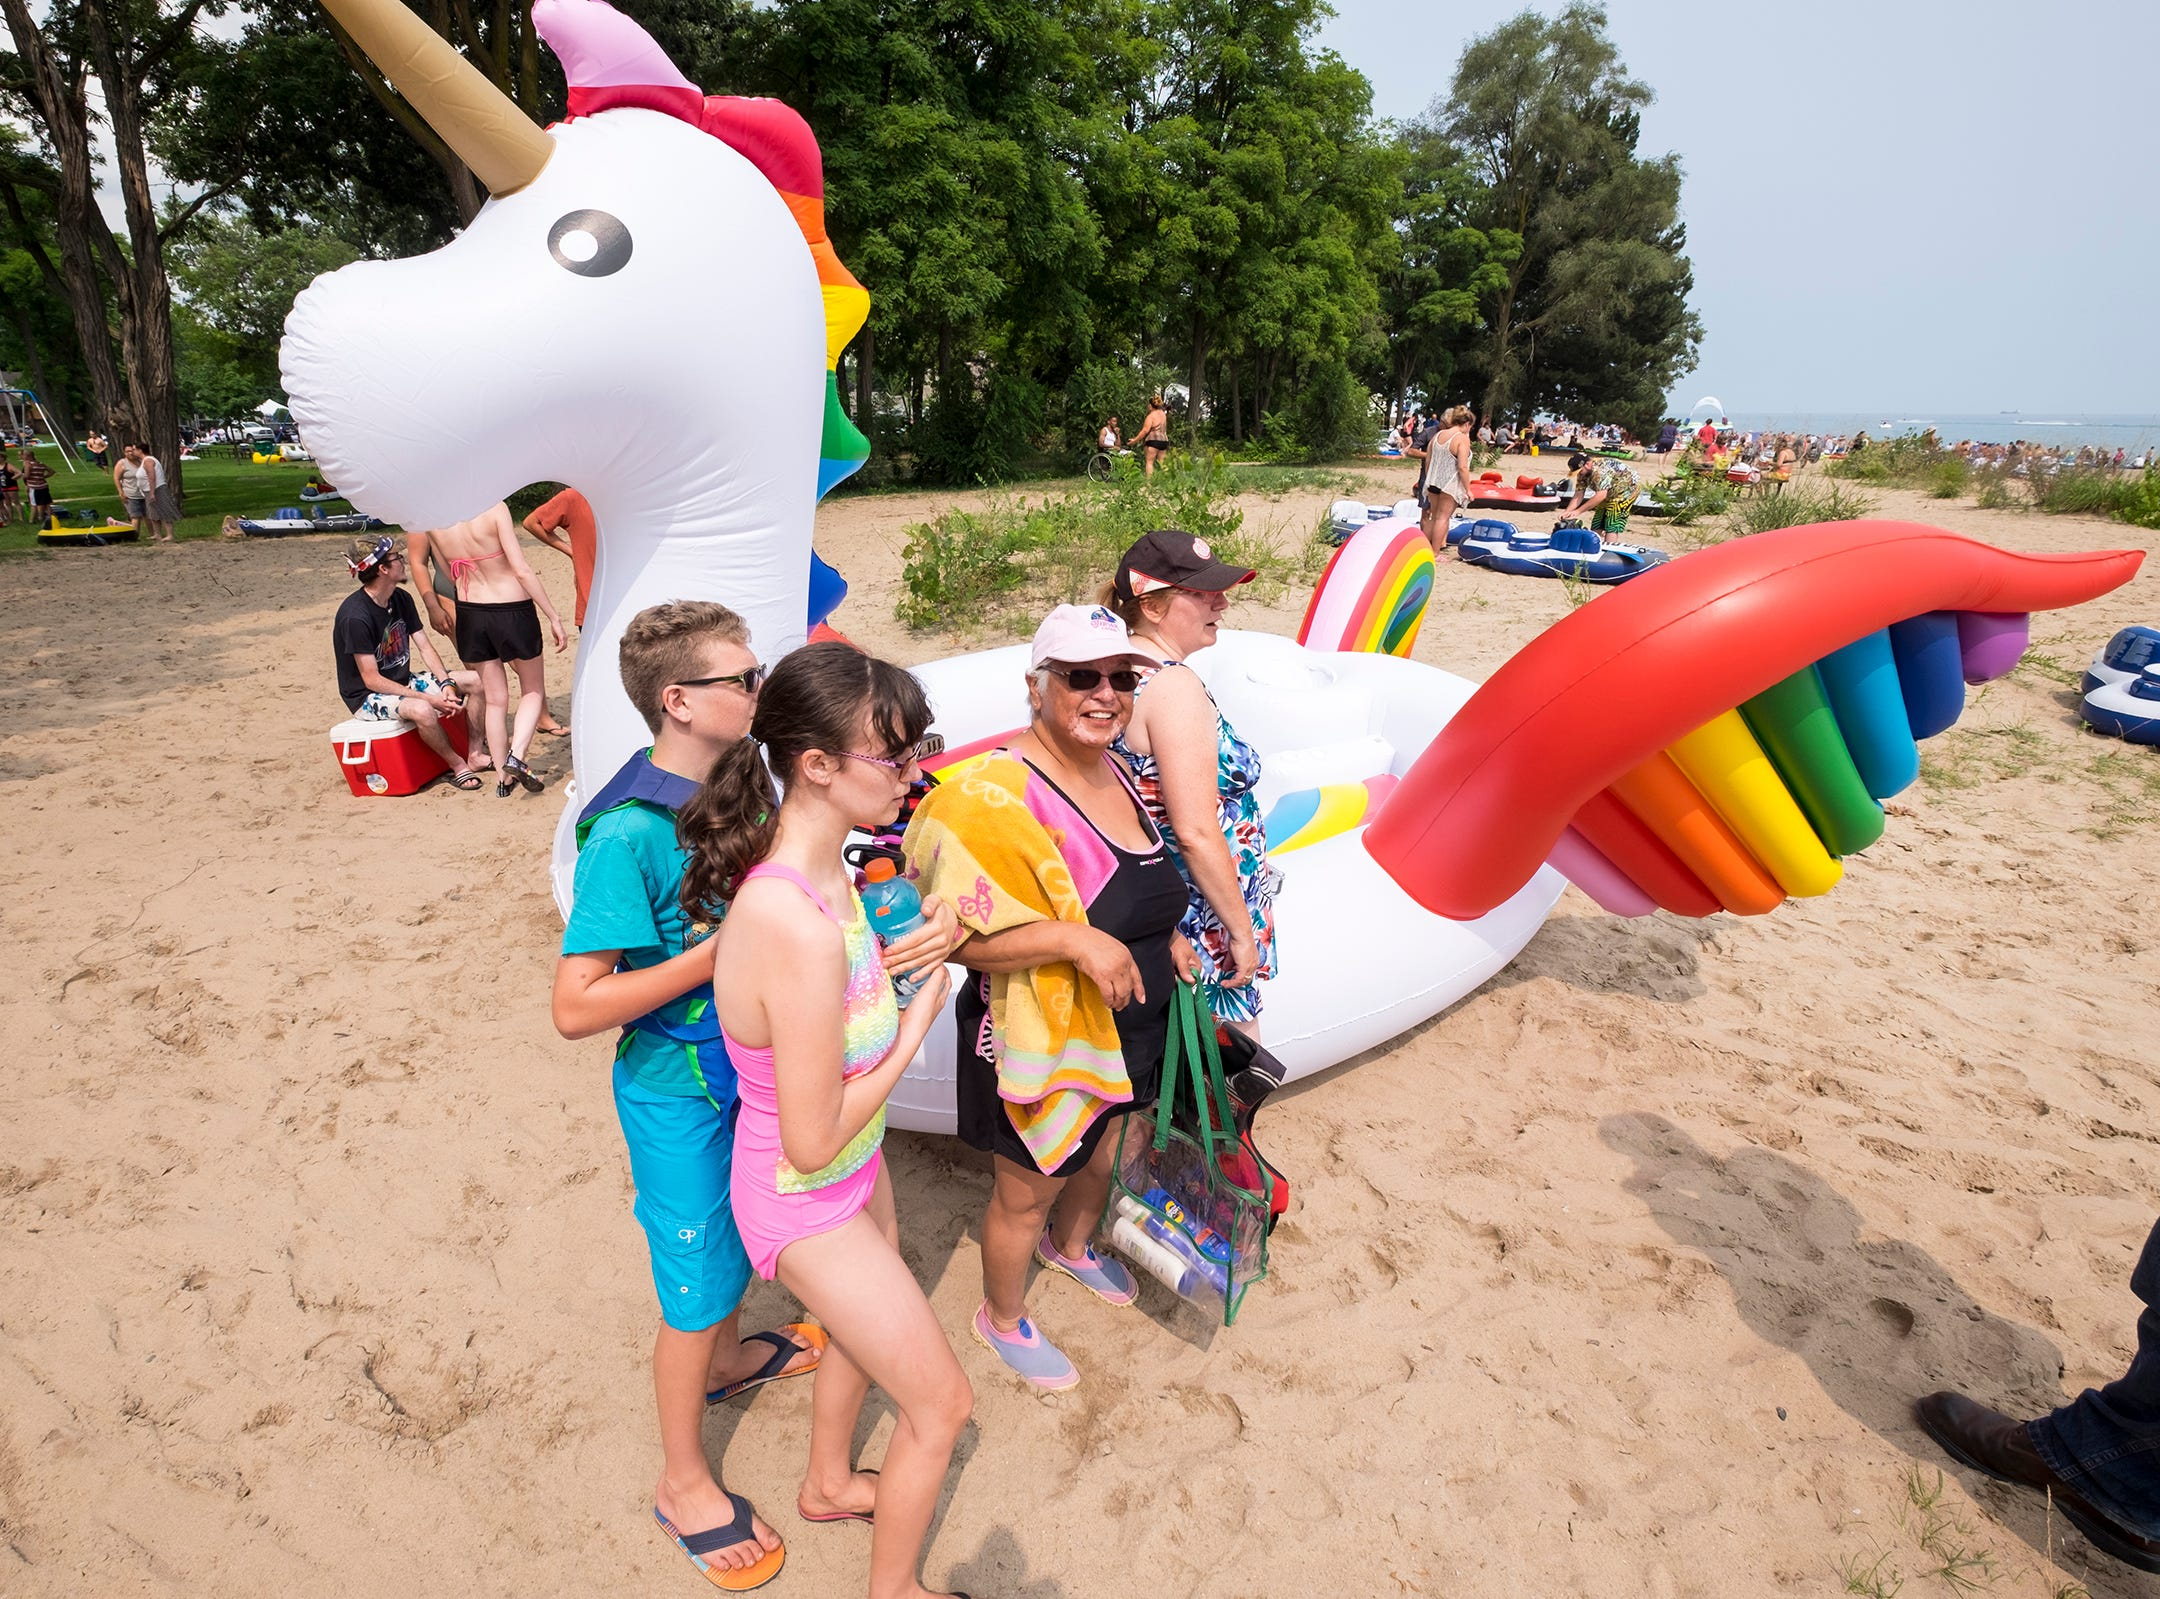 Christine Holst, Rosa Marino and the rest of their group wait by their inflatable unicorn Sunday, Aug. 19, 2018, before the annual Float Down launches from Lighthouse Beach.